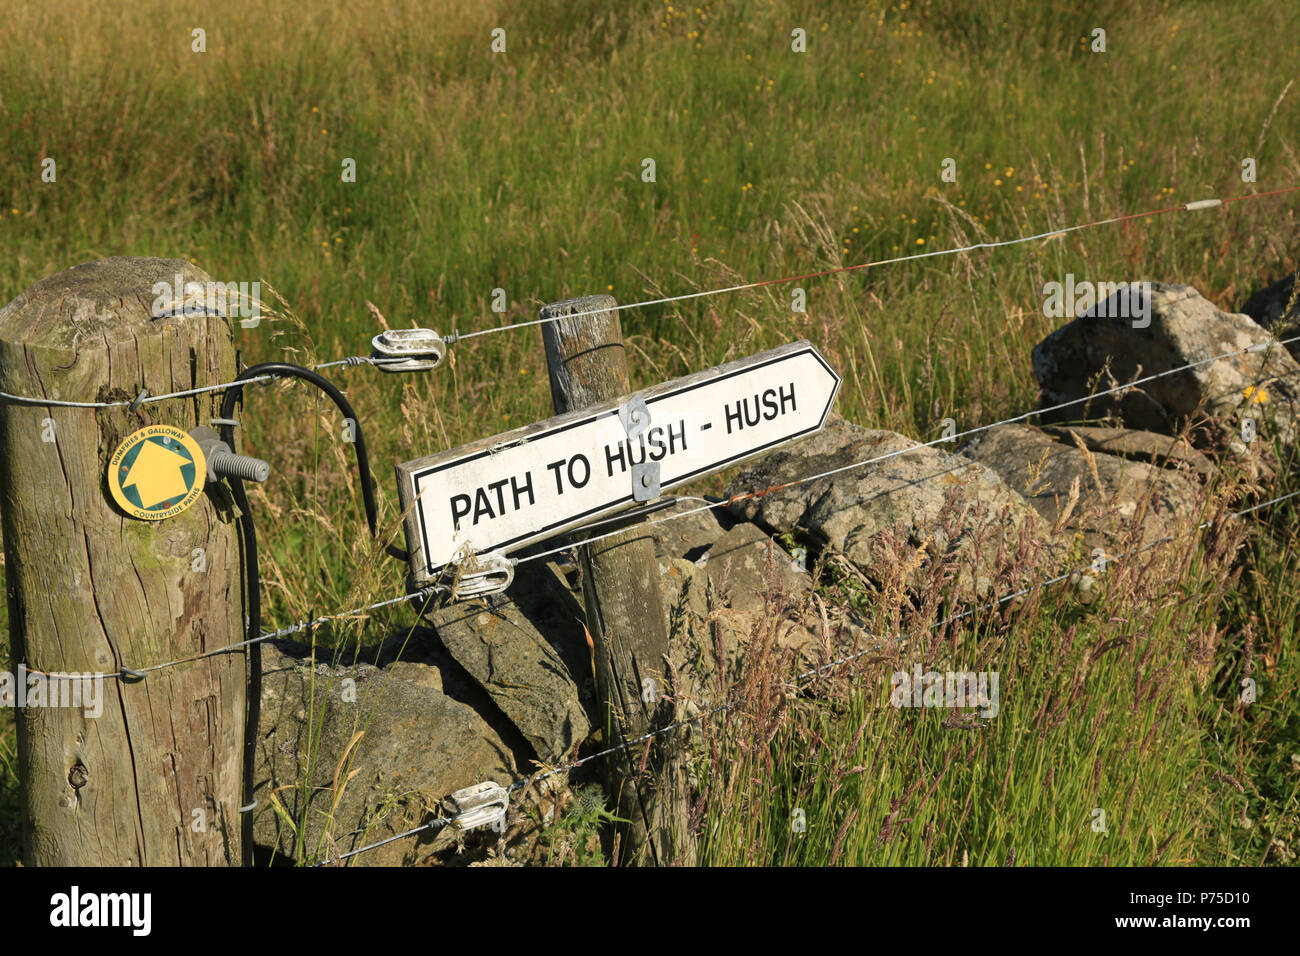 A sign showing the way to Hush - hush in Scotland, UK. - Stock Image